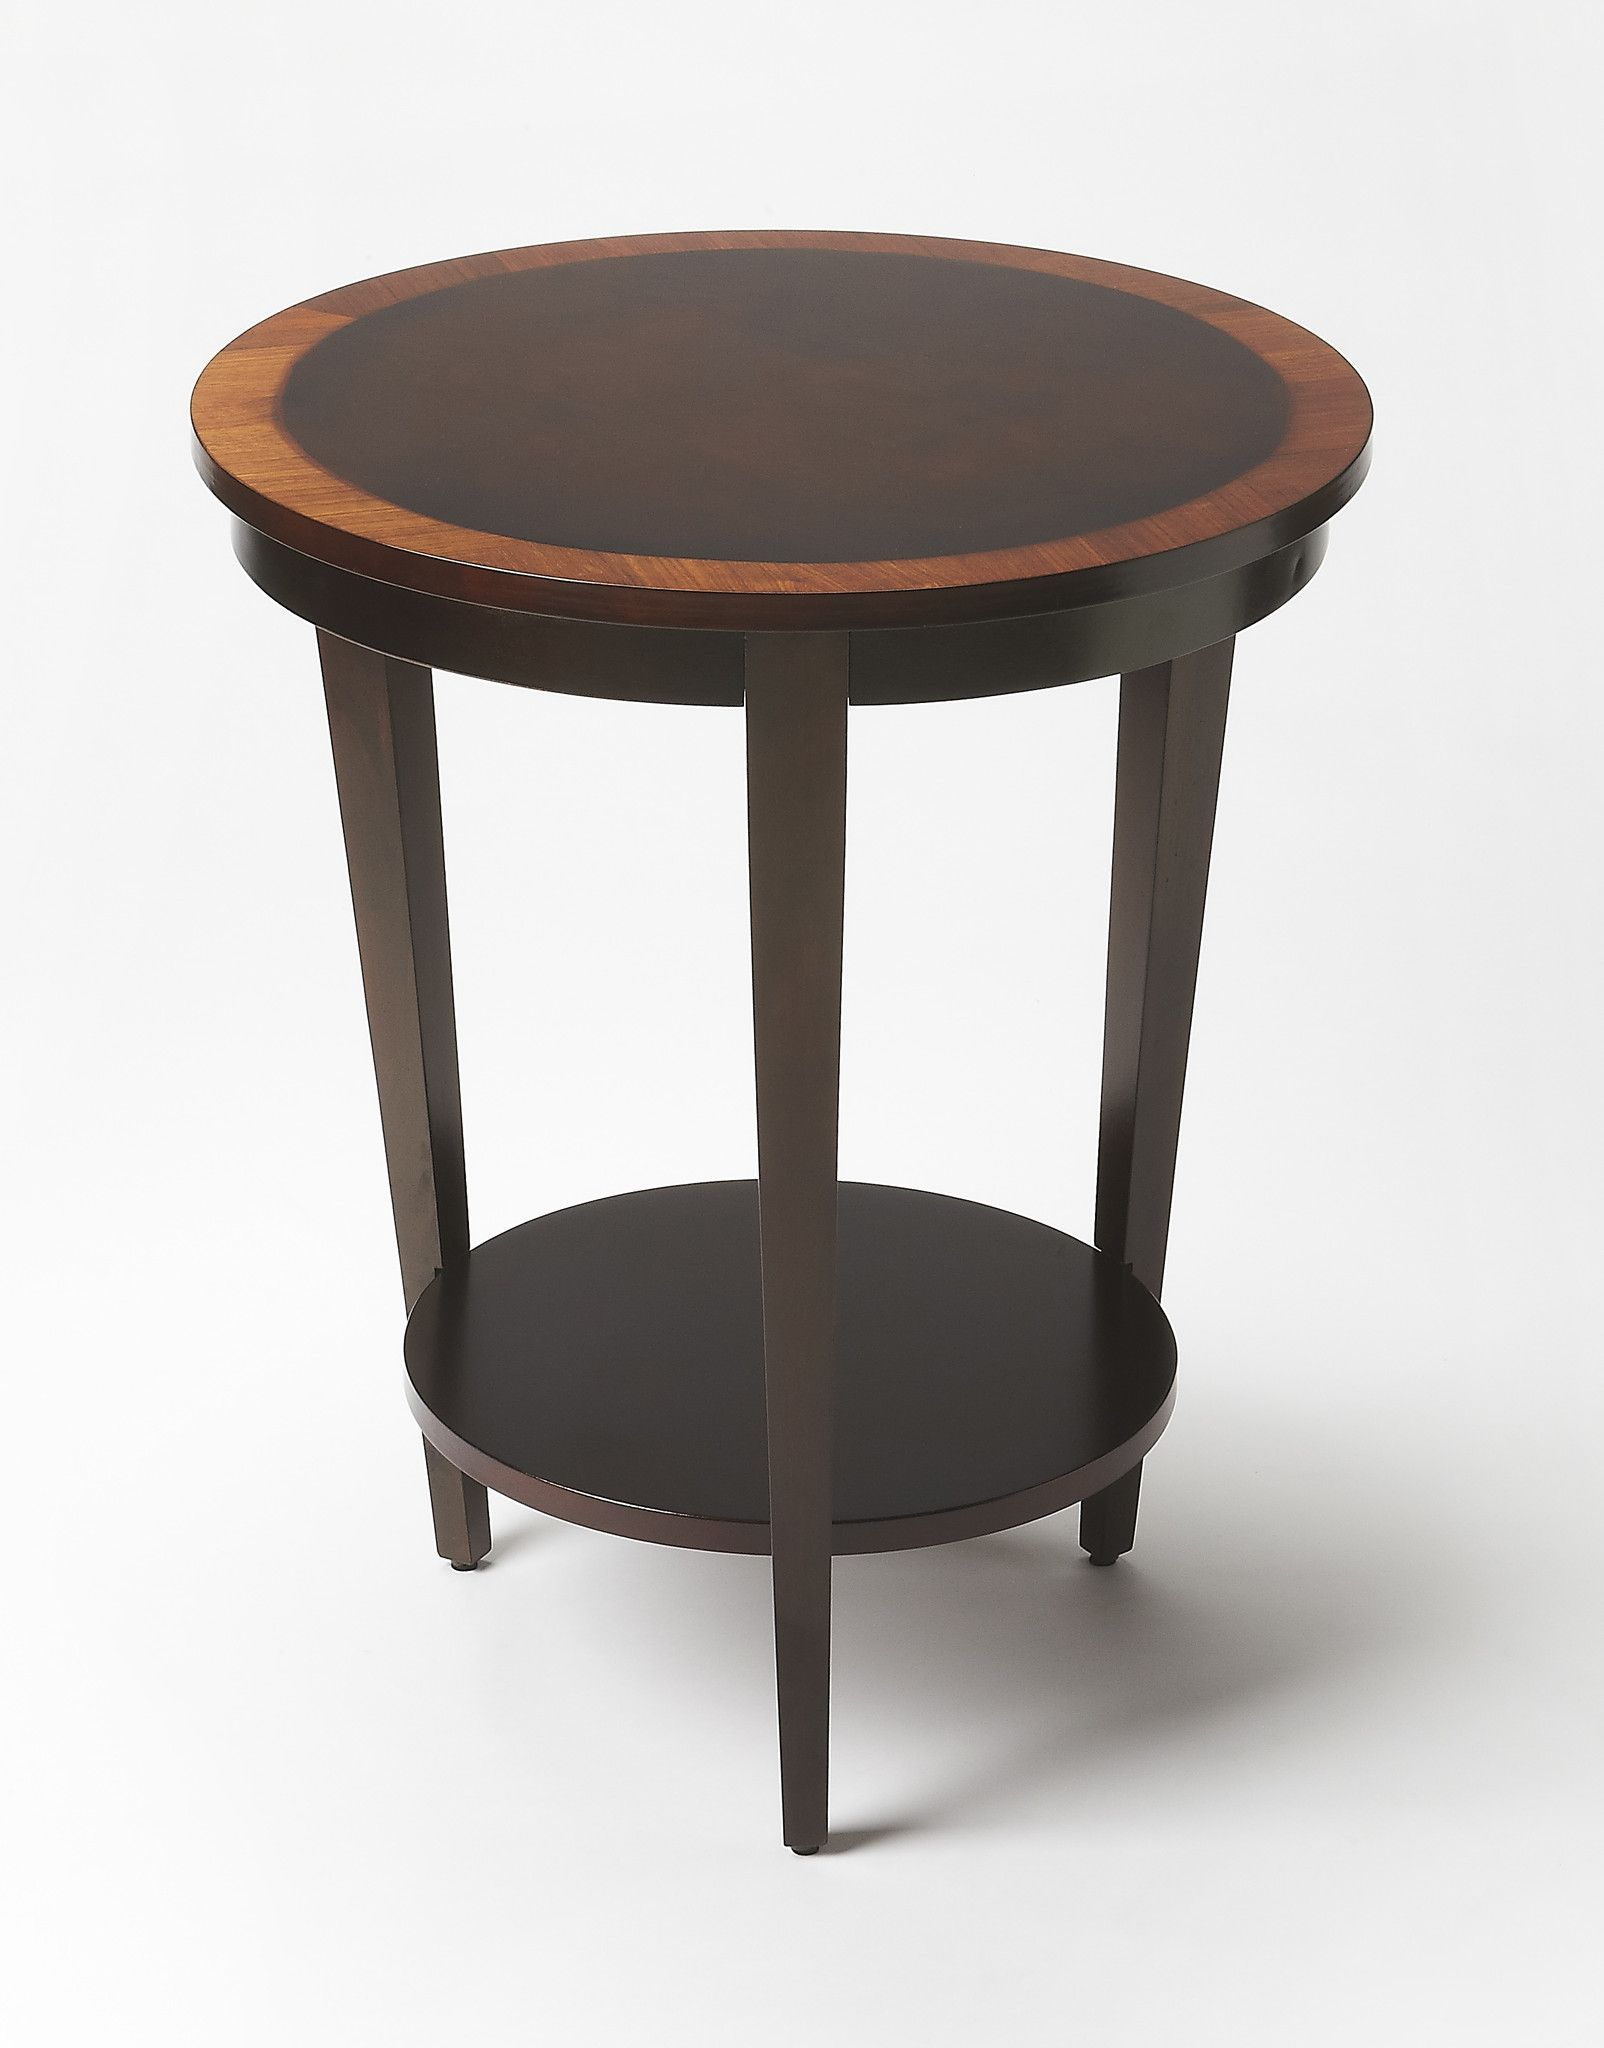 butler loft serenade cherry nouveau round accent table modern and ethan allen dining kidney shaped coffee beer cooler west elm vintage marble top pottery barn chair cover small